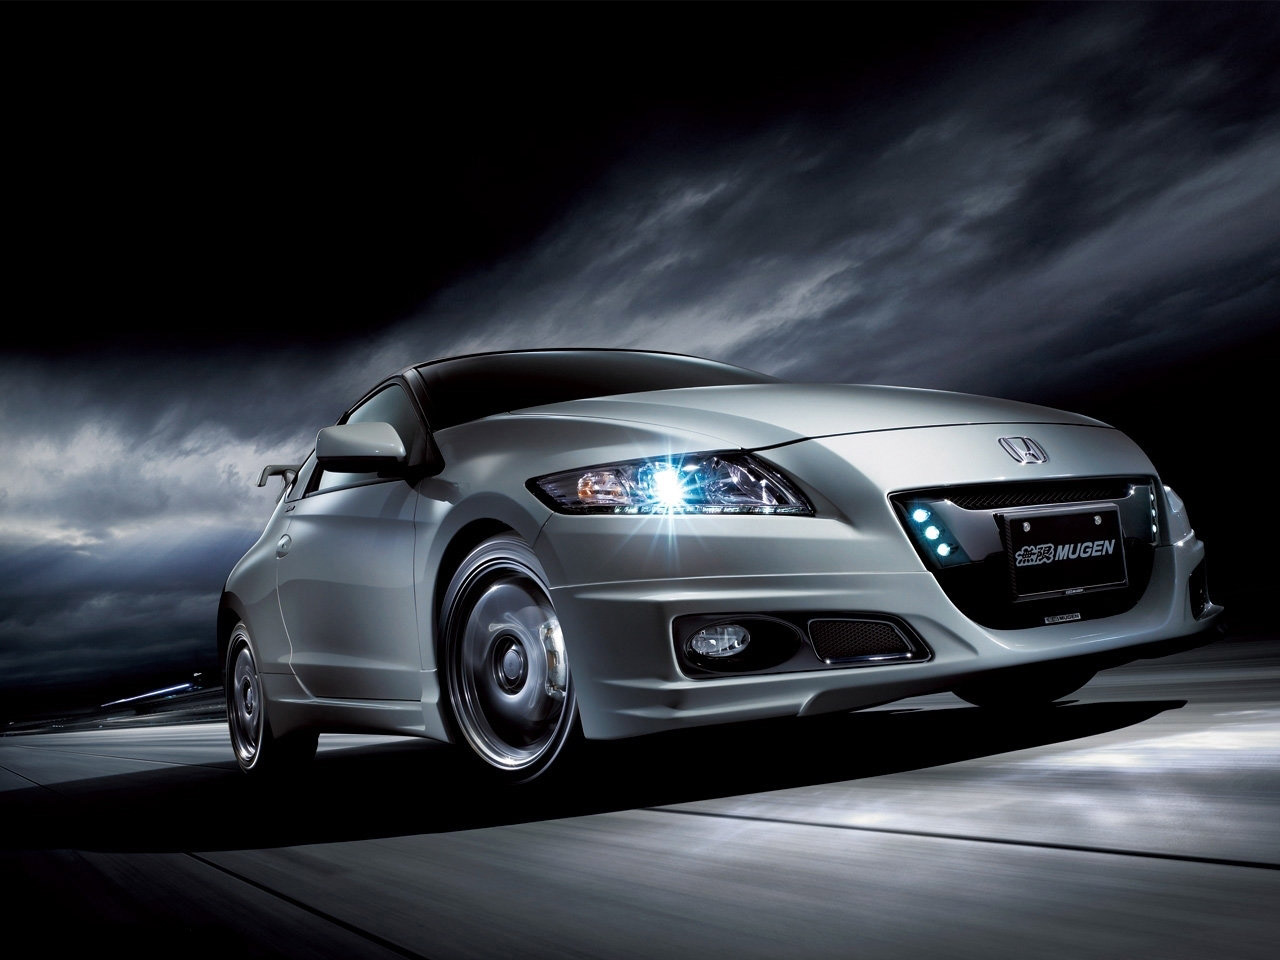 Honda Civic Type Cars Wallpapers HD